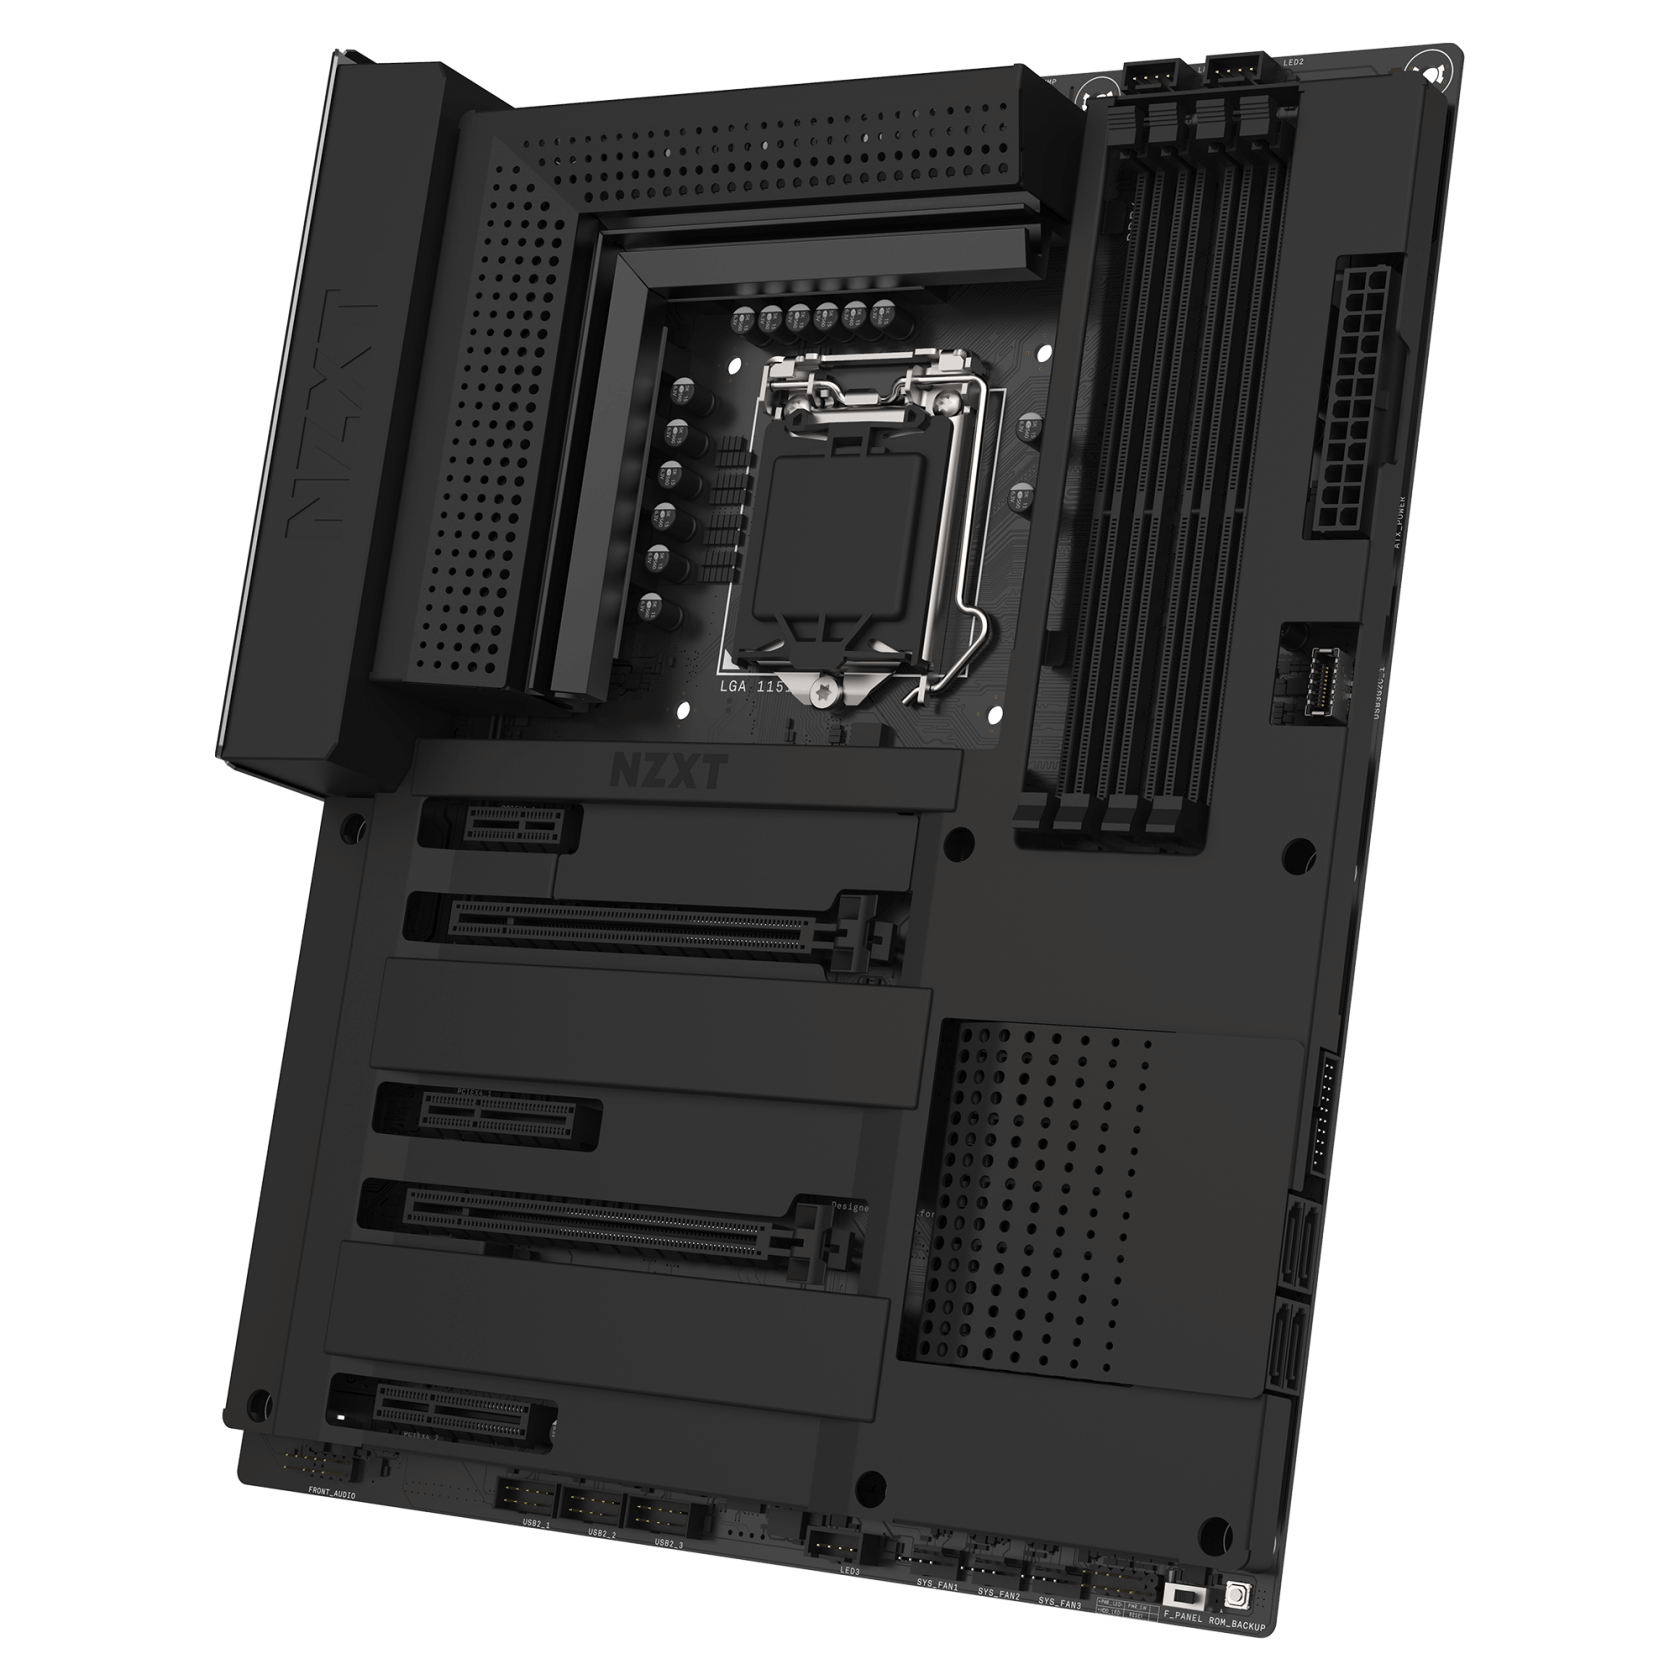 NZXT releases their second ever motherboard, the N7 Z390